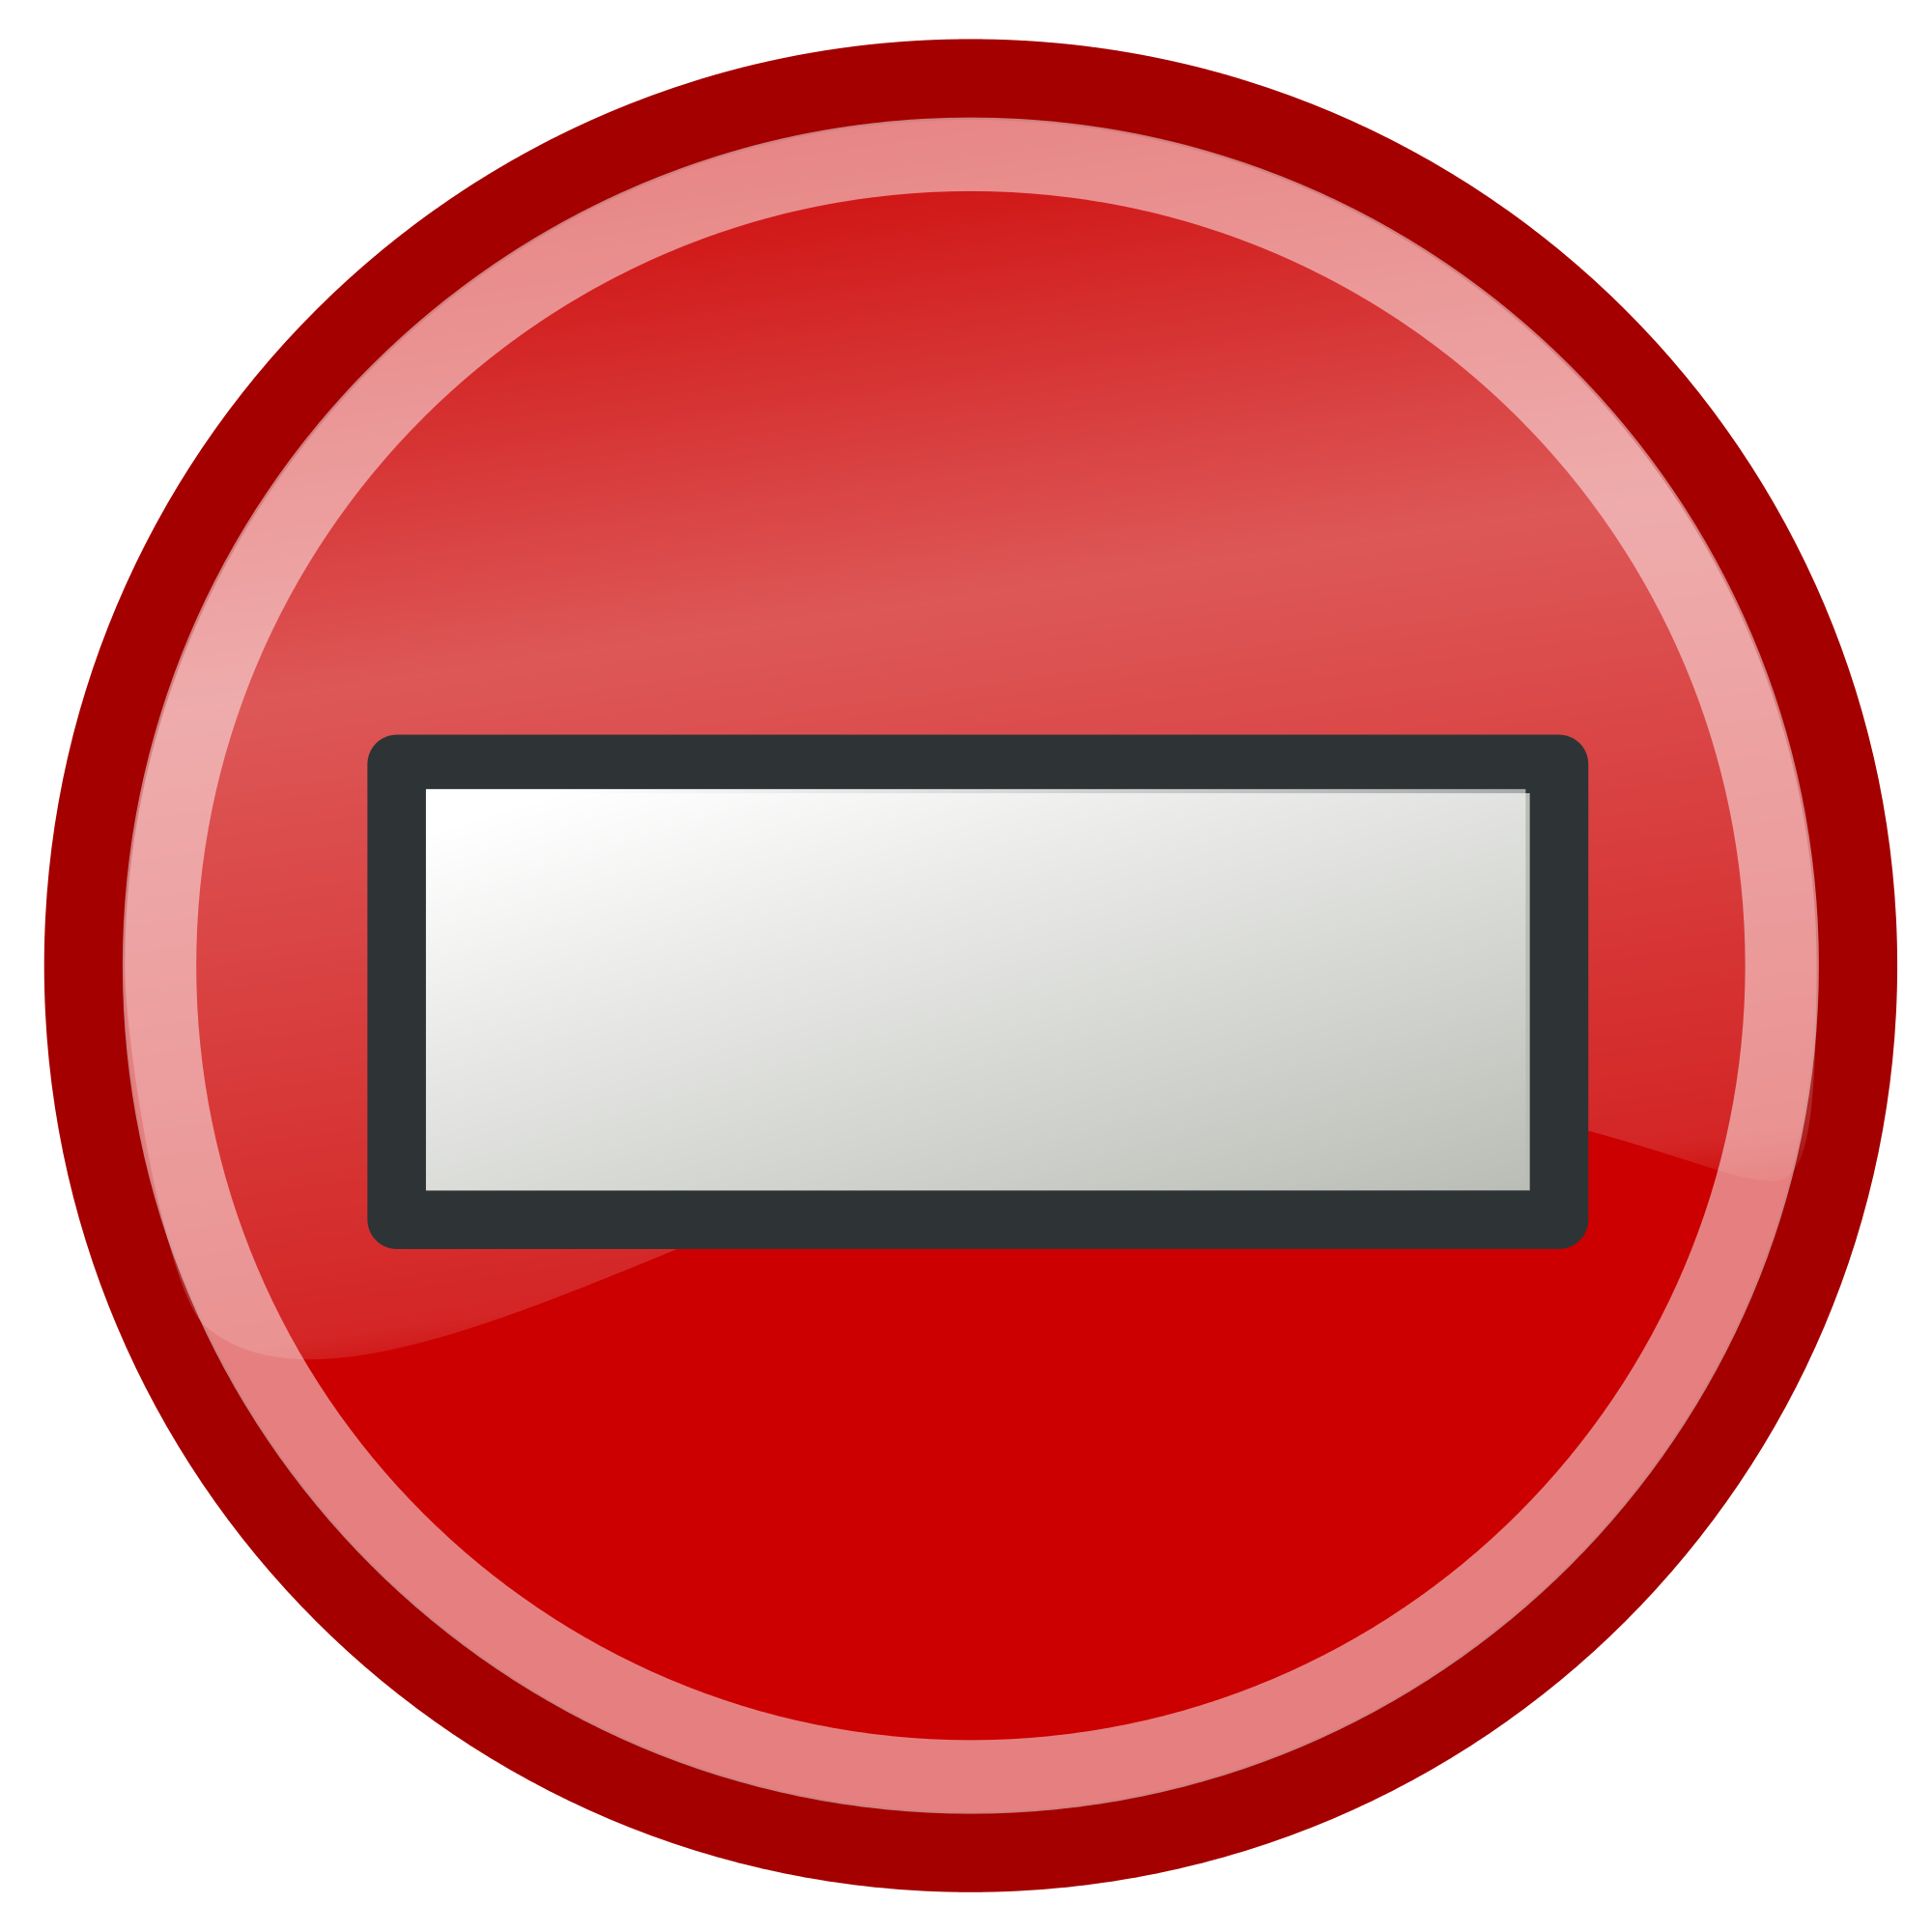 Image not available png. File svg wikimedia commons